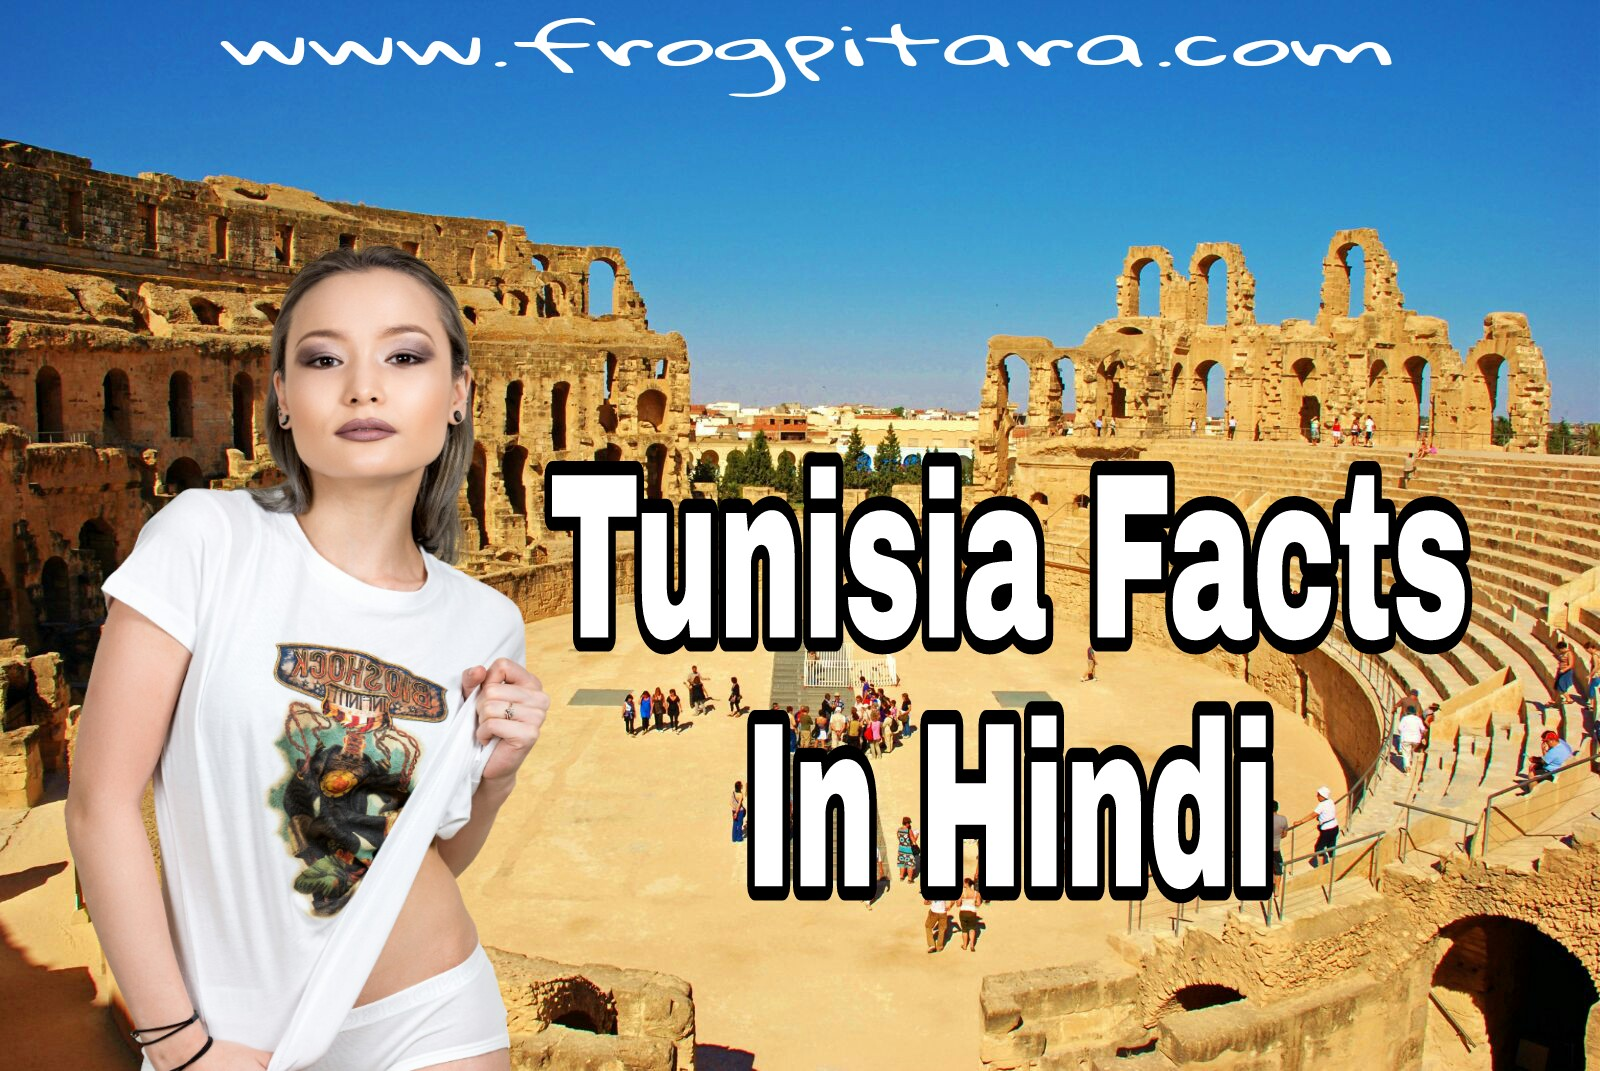 Interesting facts about Tunisia